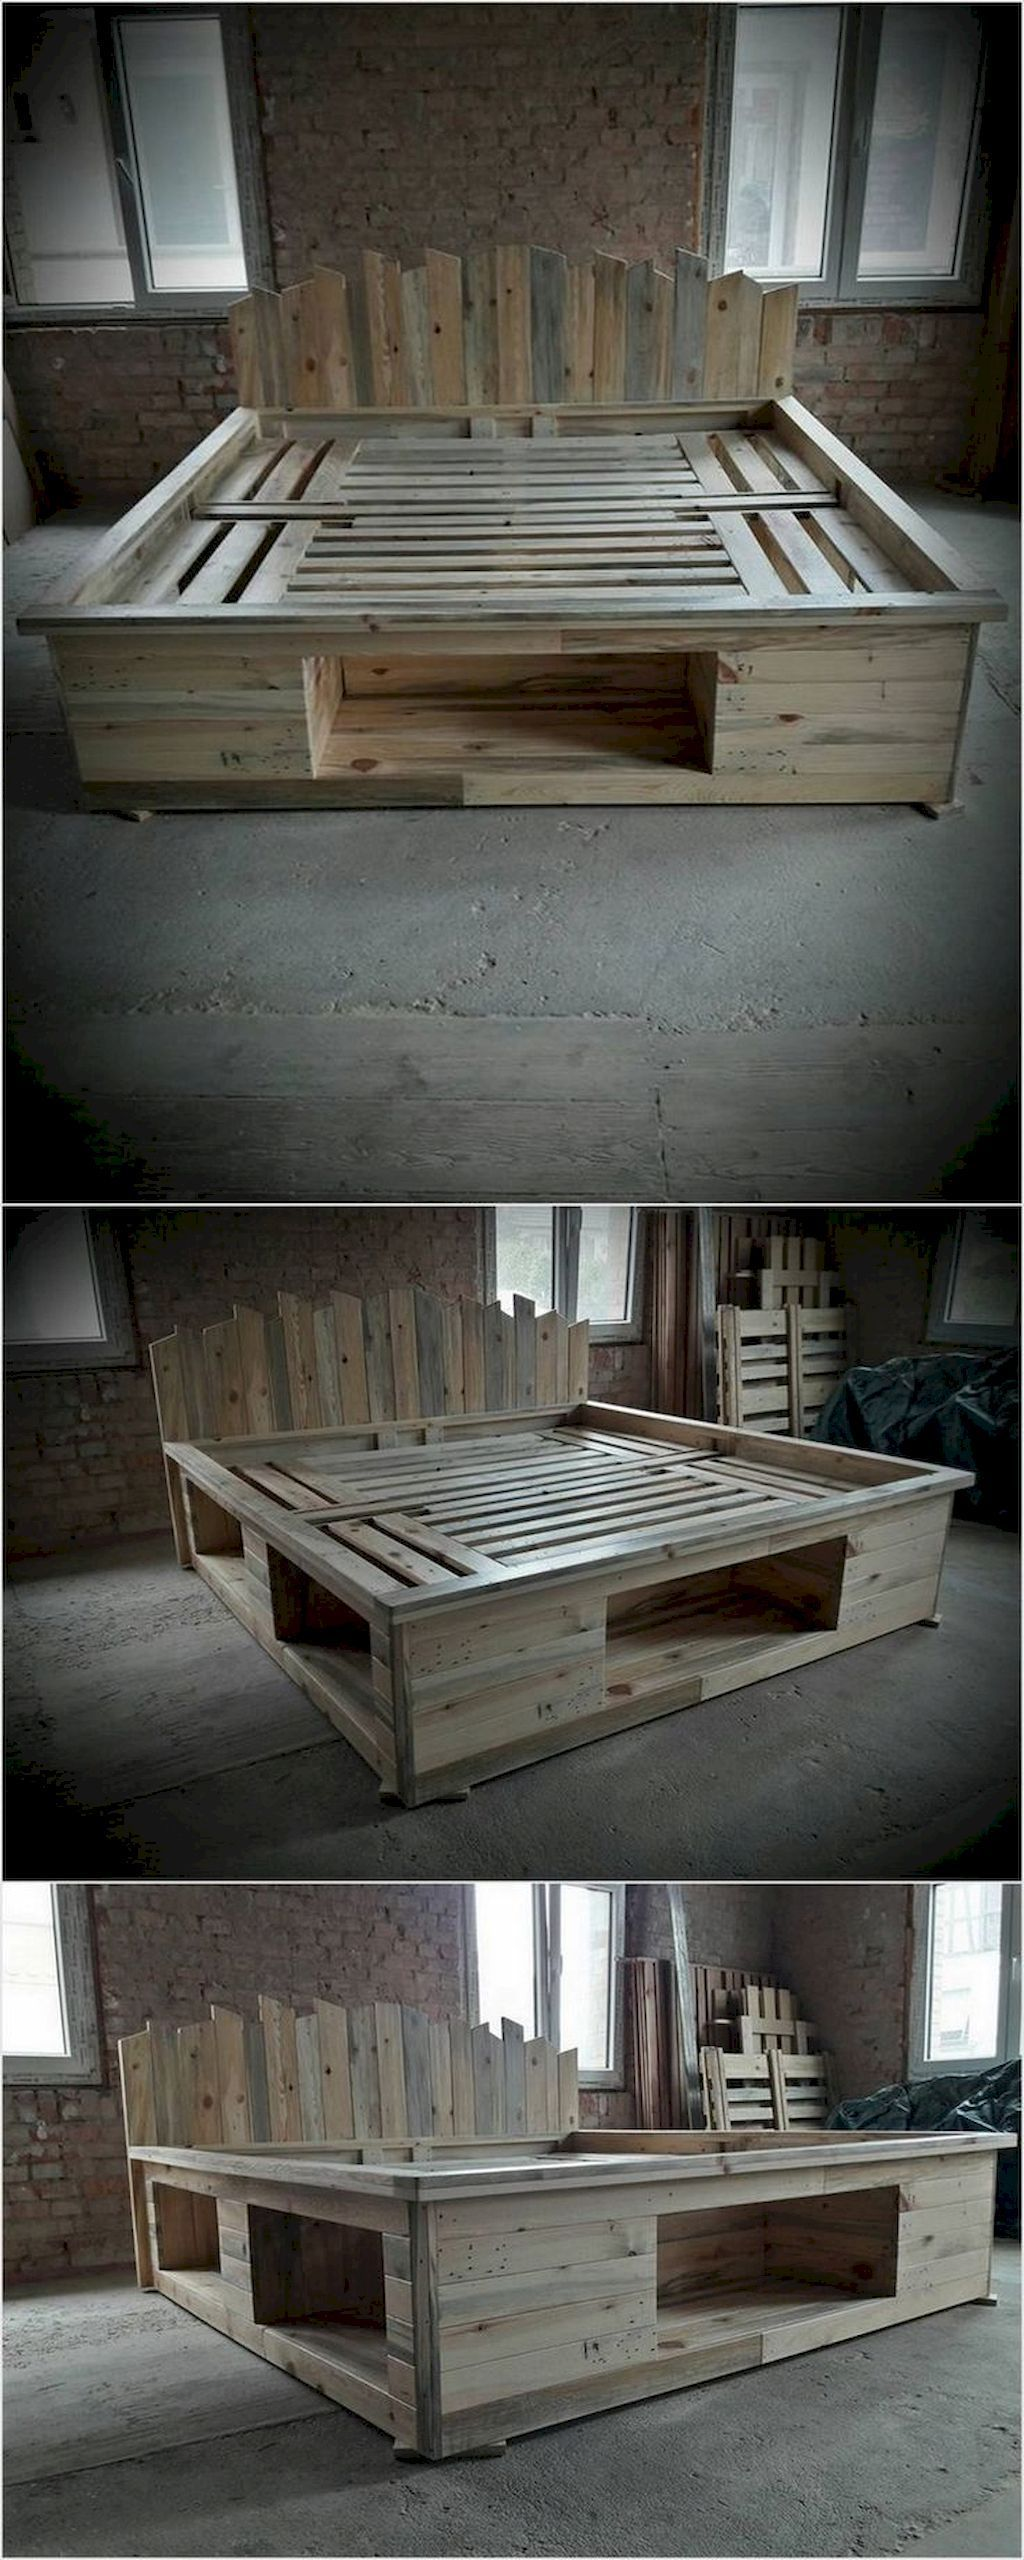 Price Worthy Awesome Shipping Pallet Recycling Ideas: There Is No Doubt  About The Fact That So Far Shipping Pallets Have Turn Out To Be One Of The  Perfect